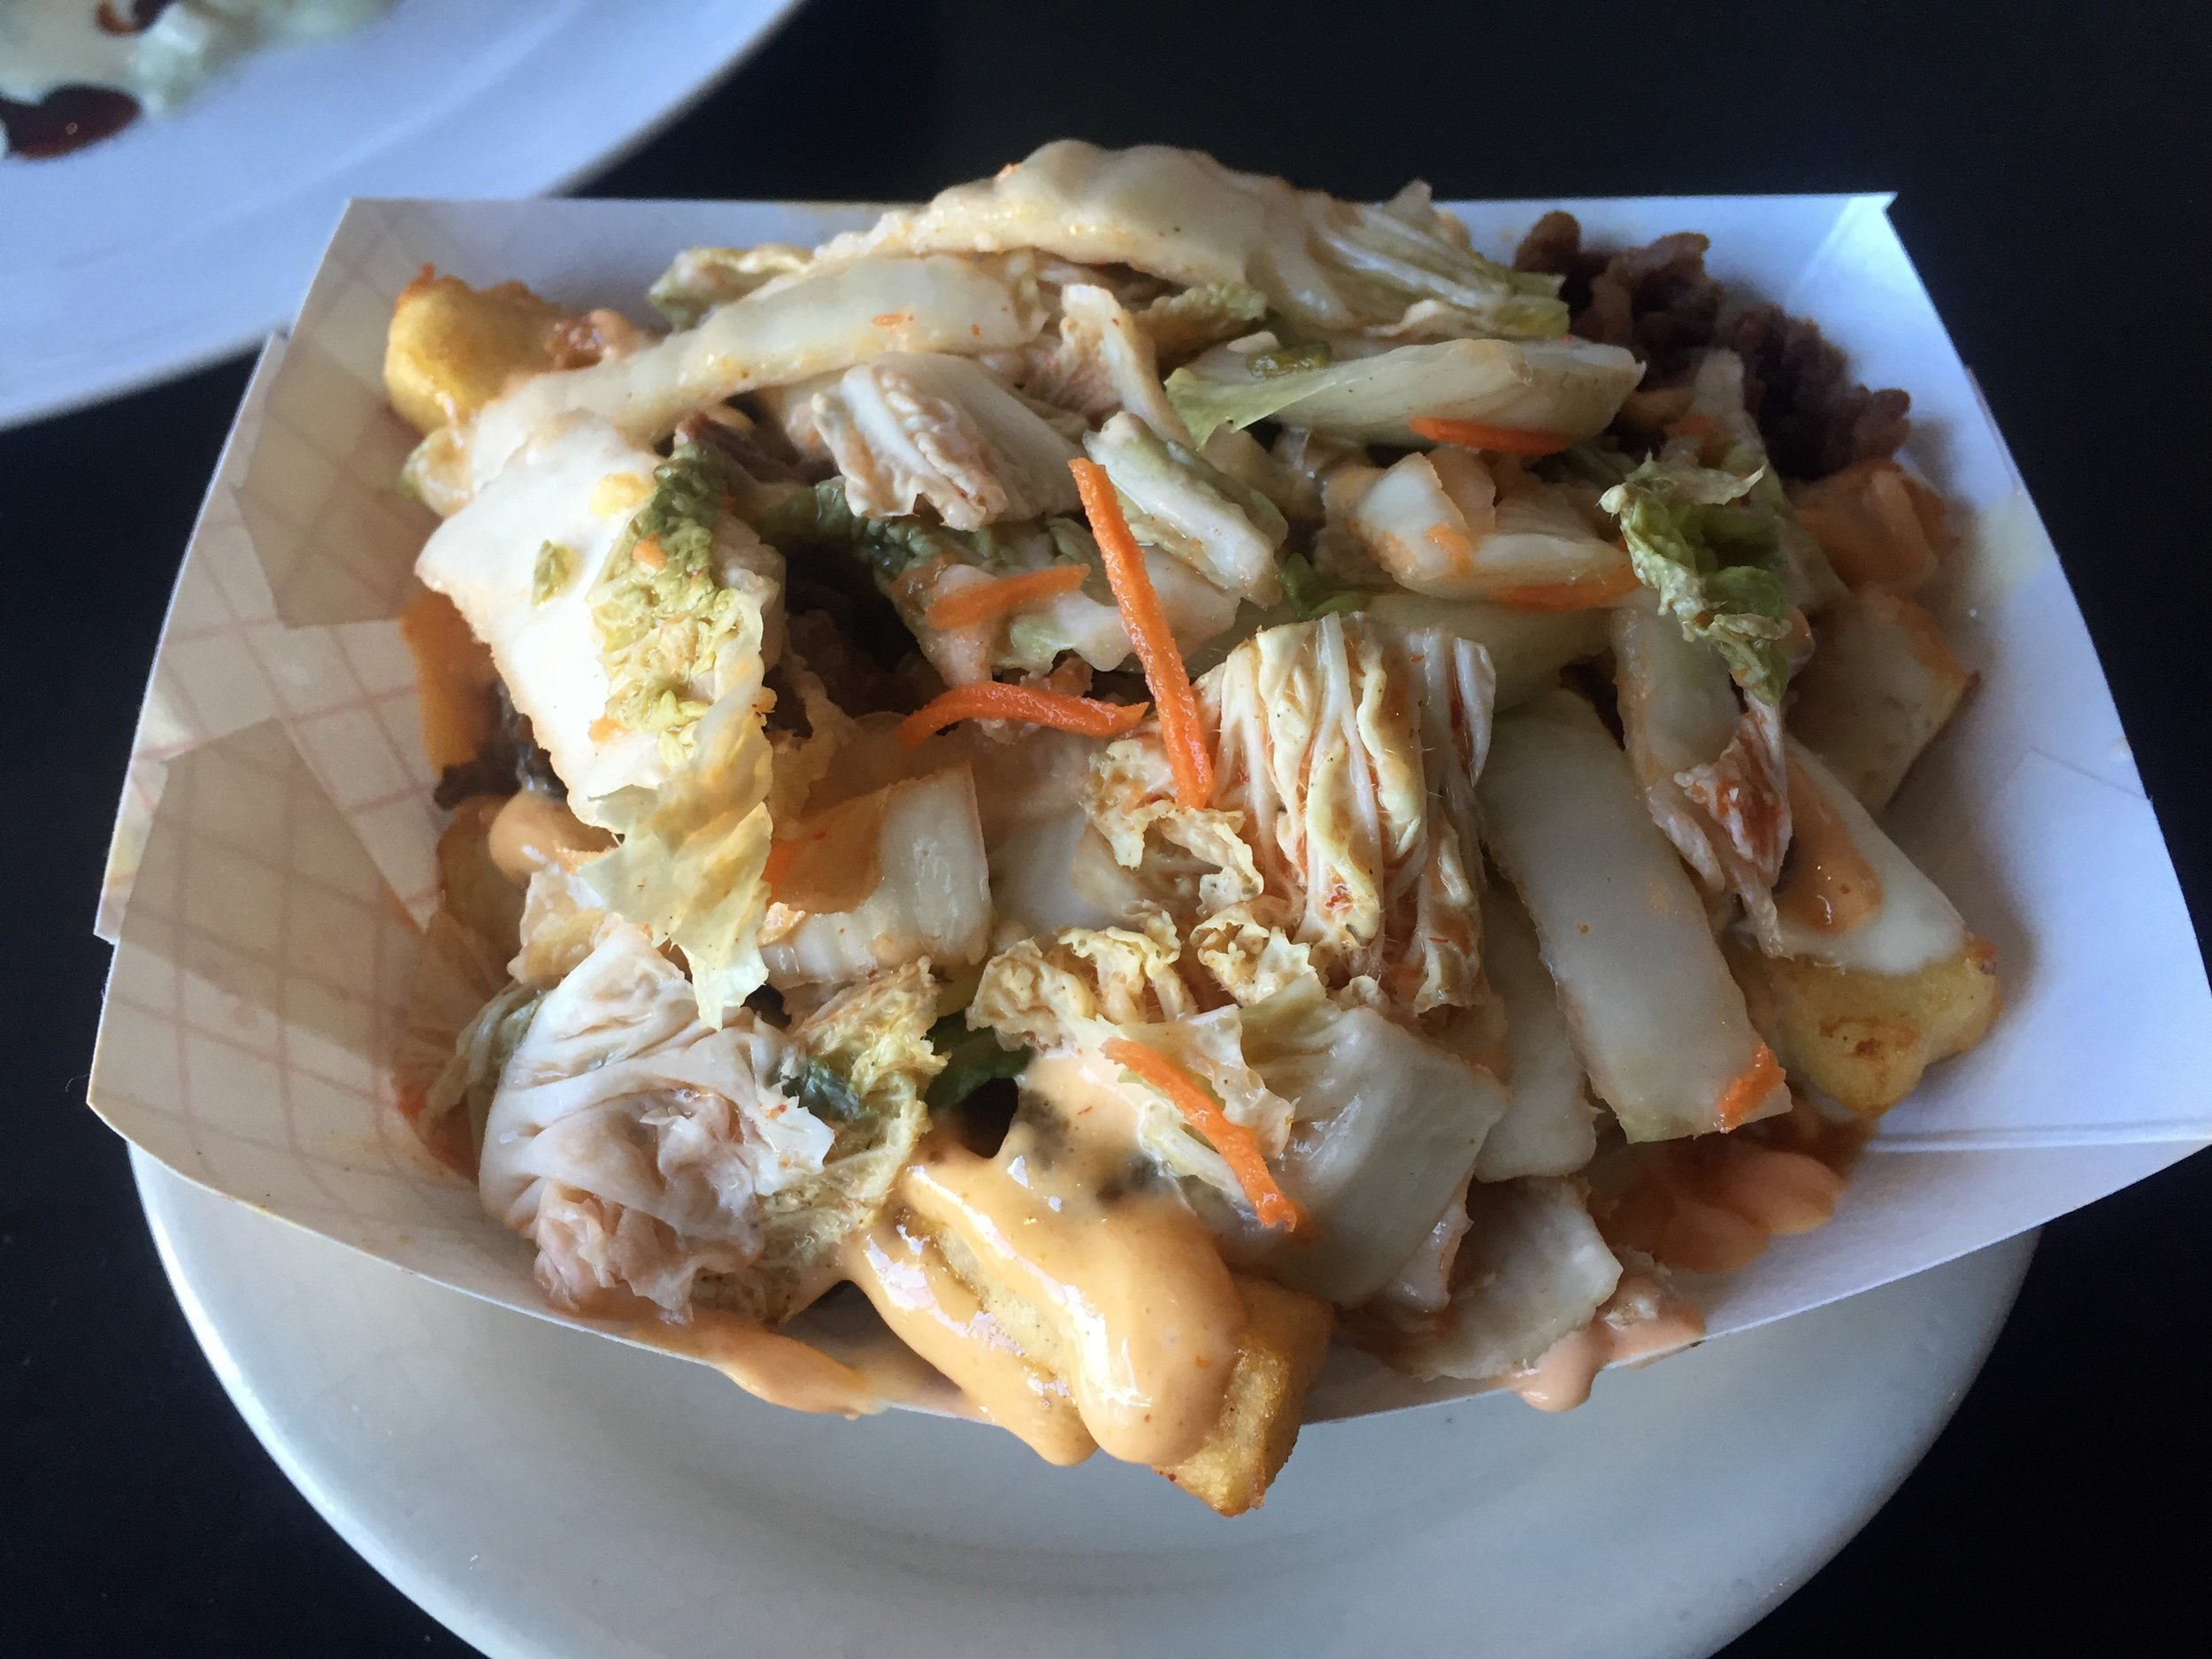 When you want your taste buds to explode... - Tacopocalypse407 E 5th St, Des Moines, IA(515) 556-0571*Personal Favorite - masa fries with Korean chicken (pictured)